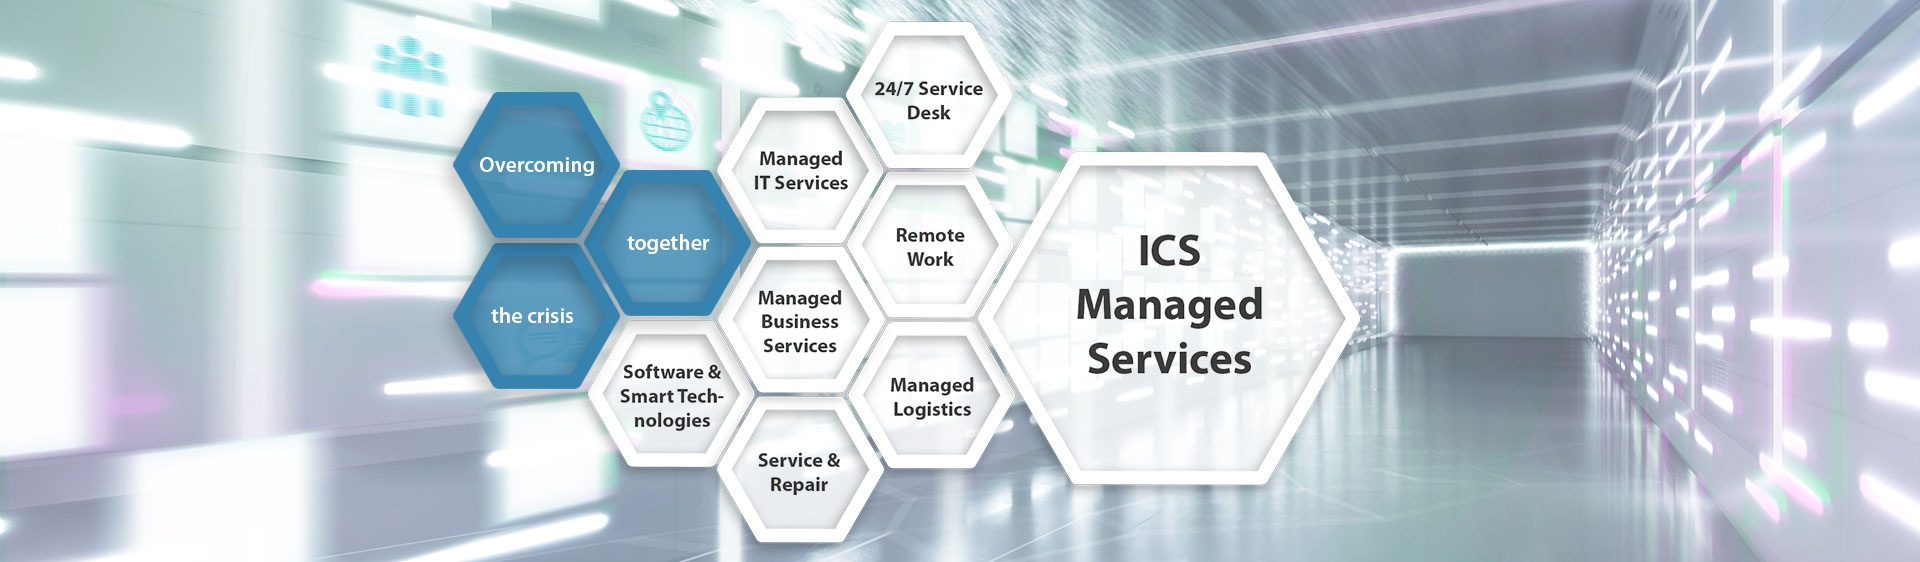 ICS Managed Services in the Corona Crisis